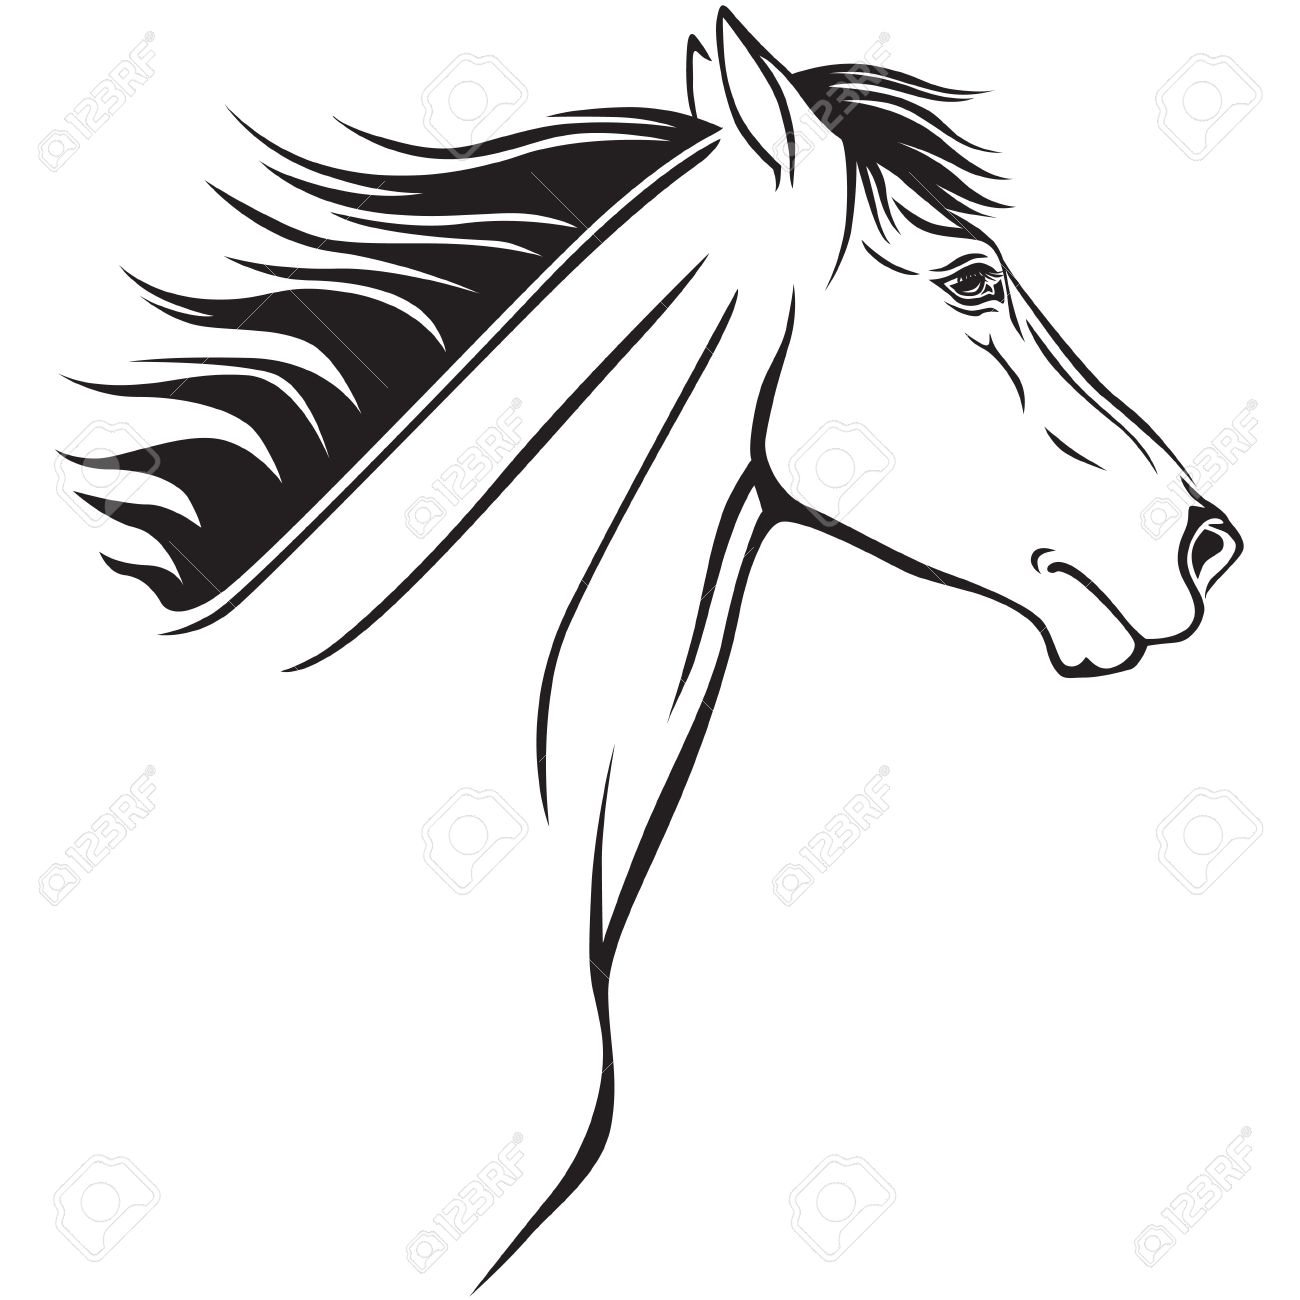 1300x1300 Contour Image Of A Beautiful Horses Profile Royalty Free Cliparts